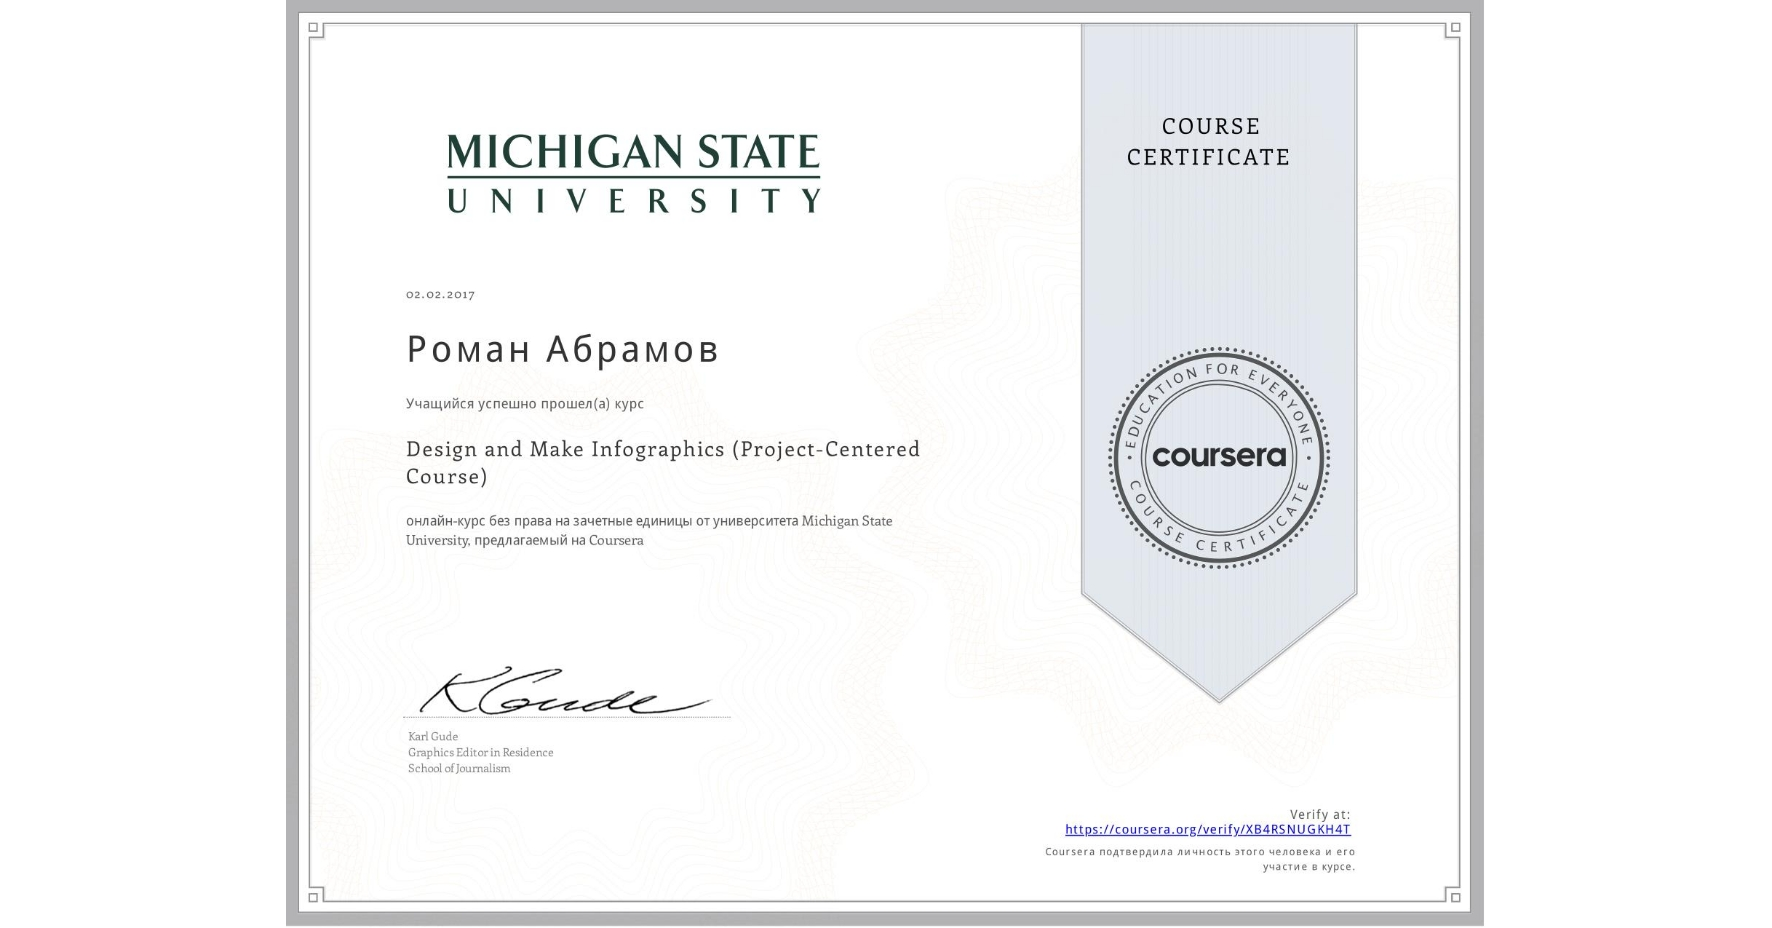 View certificate for Роман Абрамов, Design and Make Infographics (Project-Centered Course), an online non-credit course authorized by Michigan State University and offered through Coursera